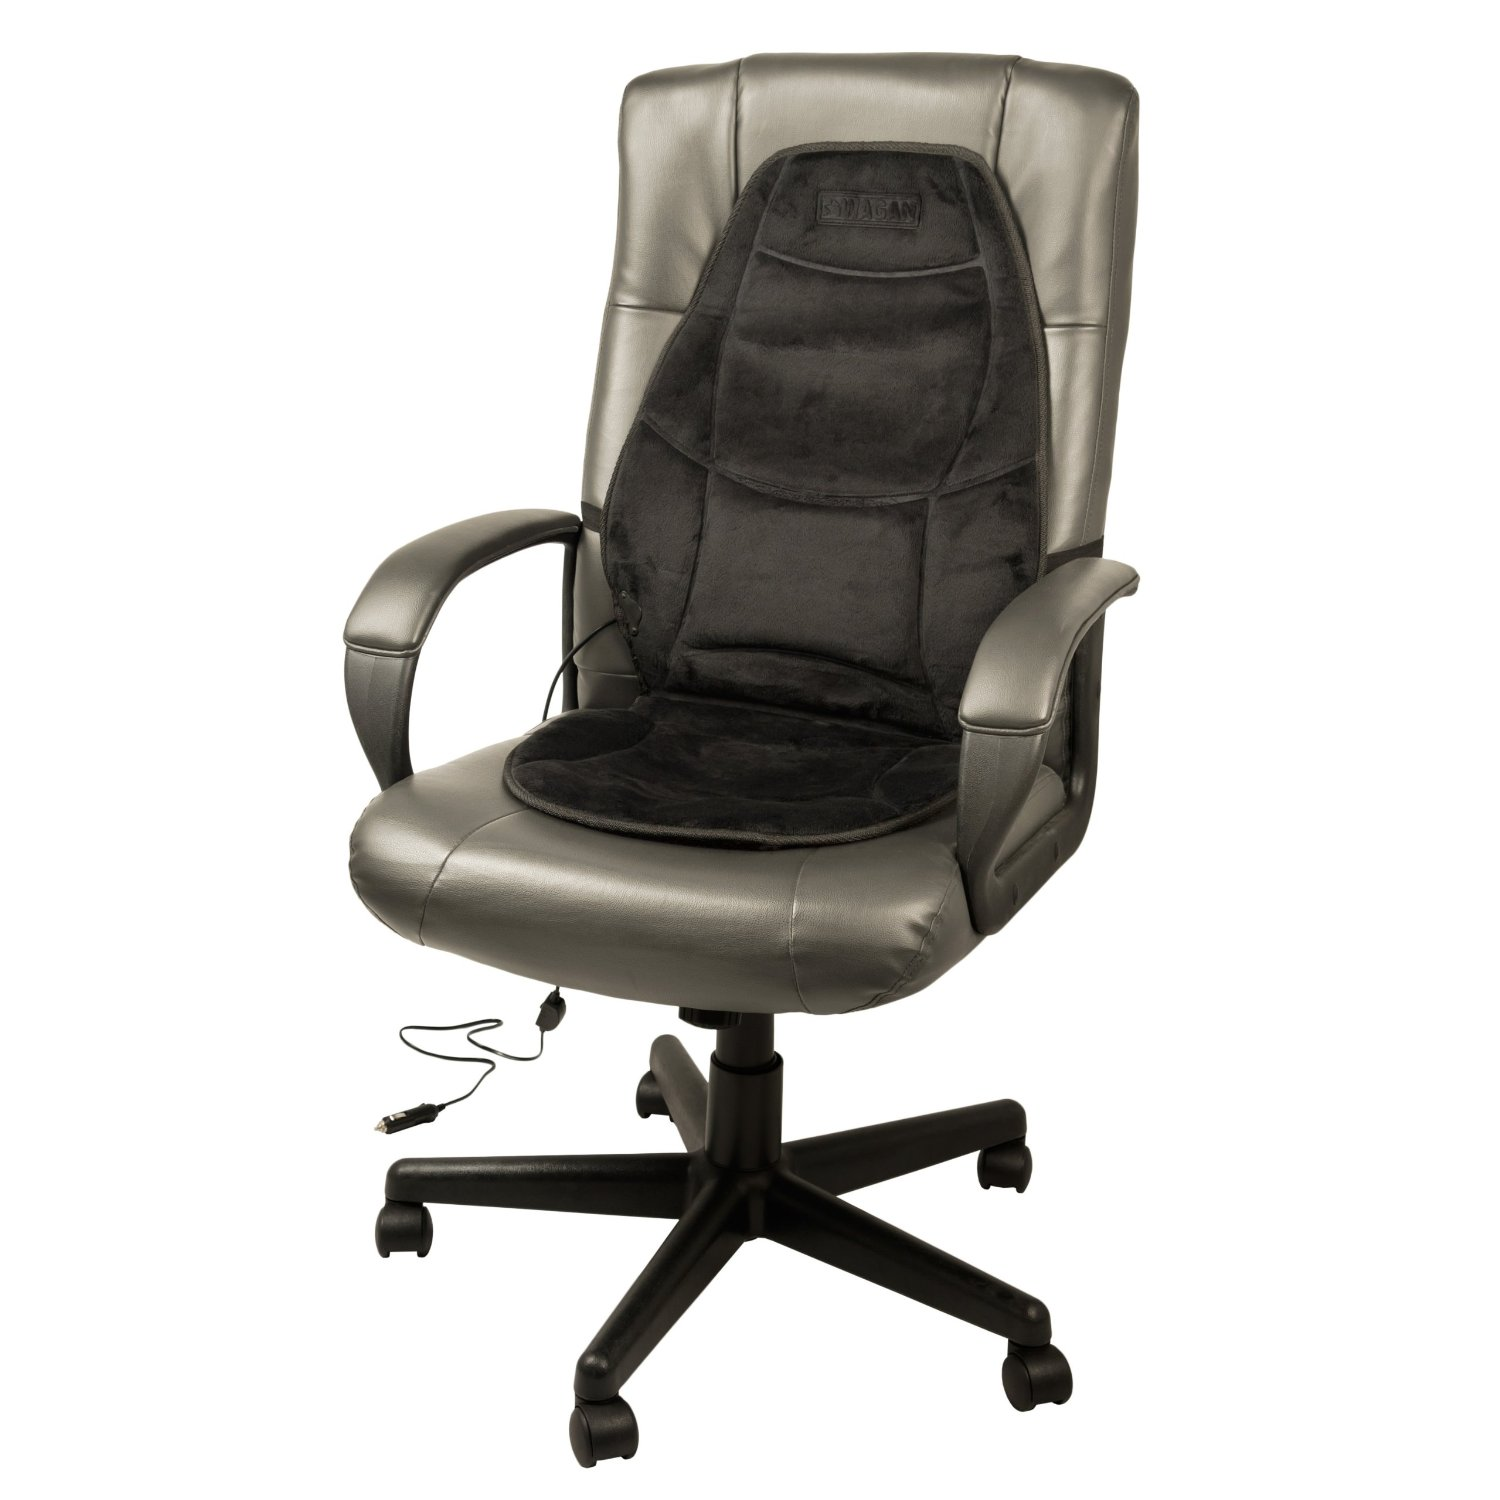 office chair lumbar pillow